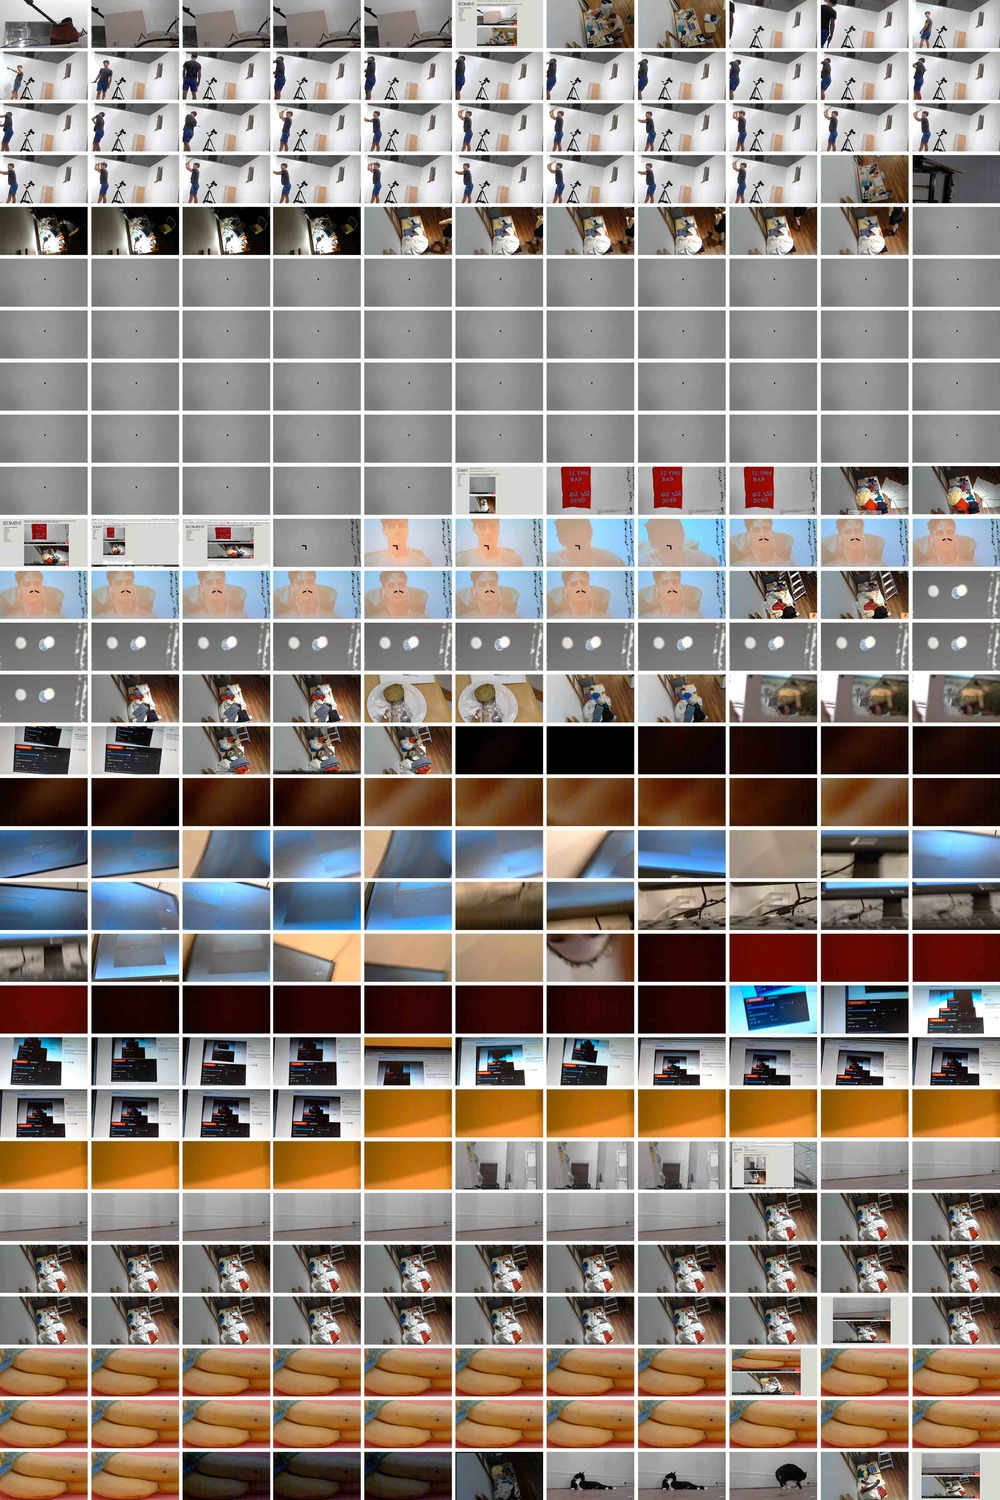 All-Nighter's Screenshot_Grid_PRINT.jpg